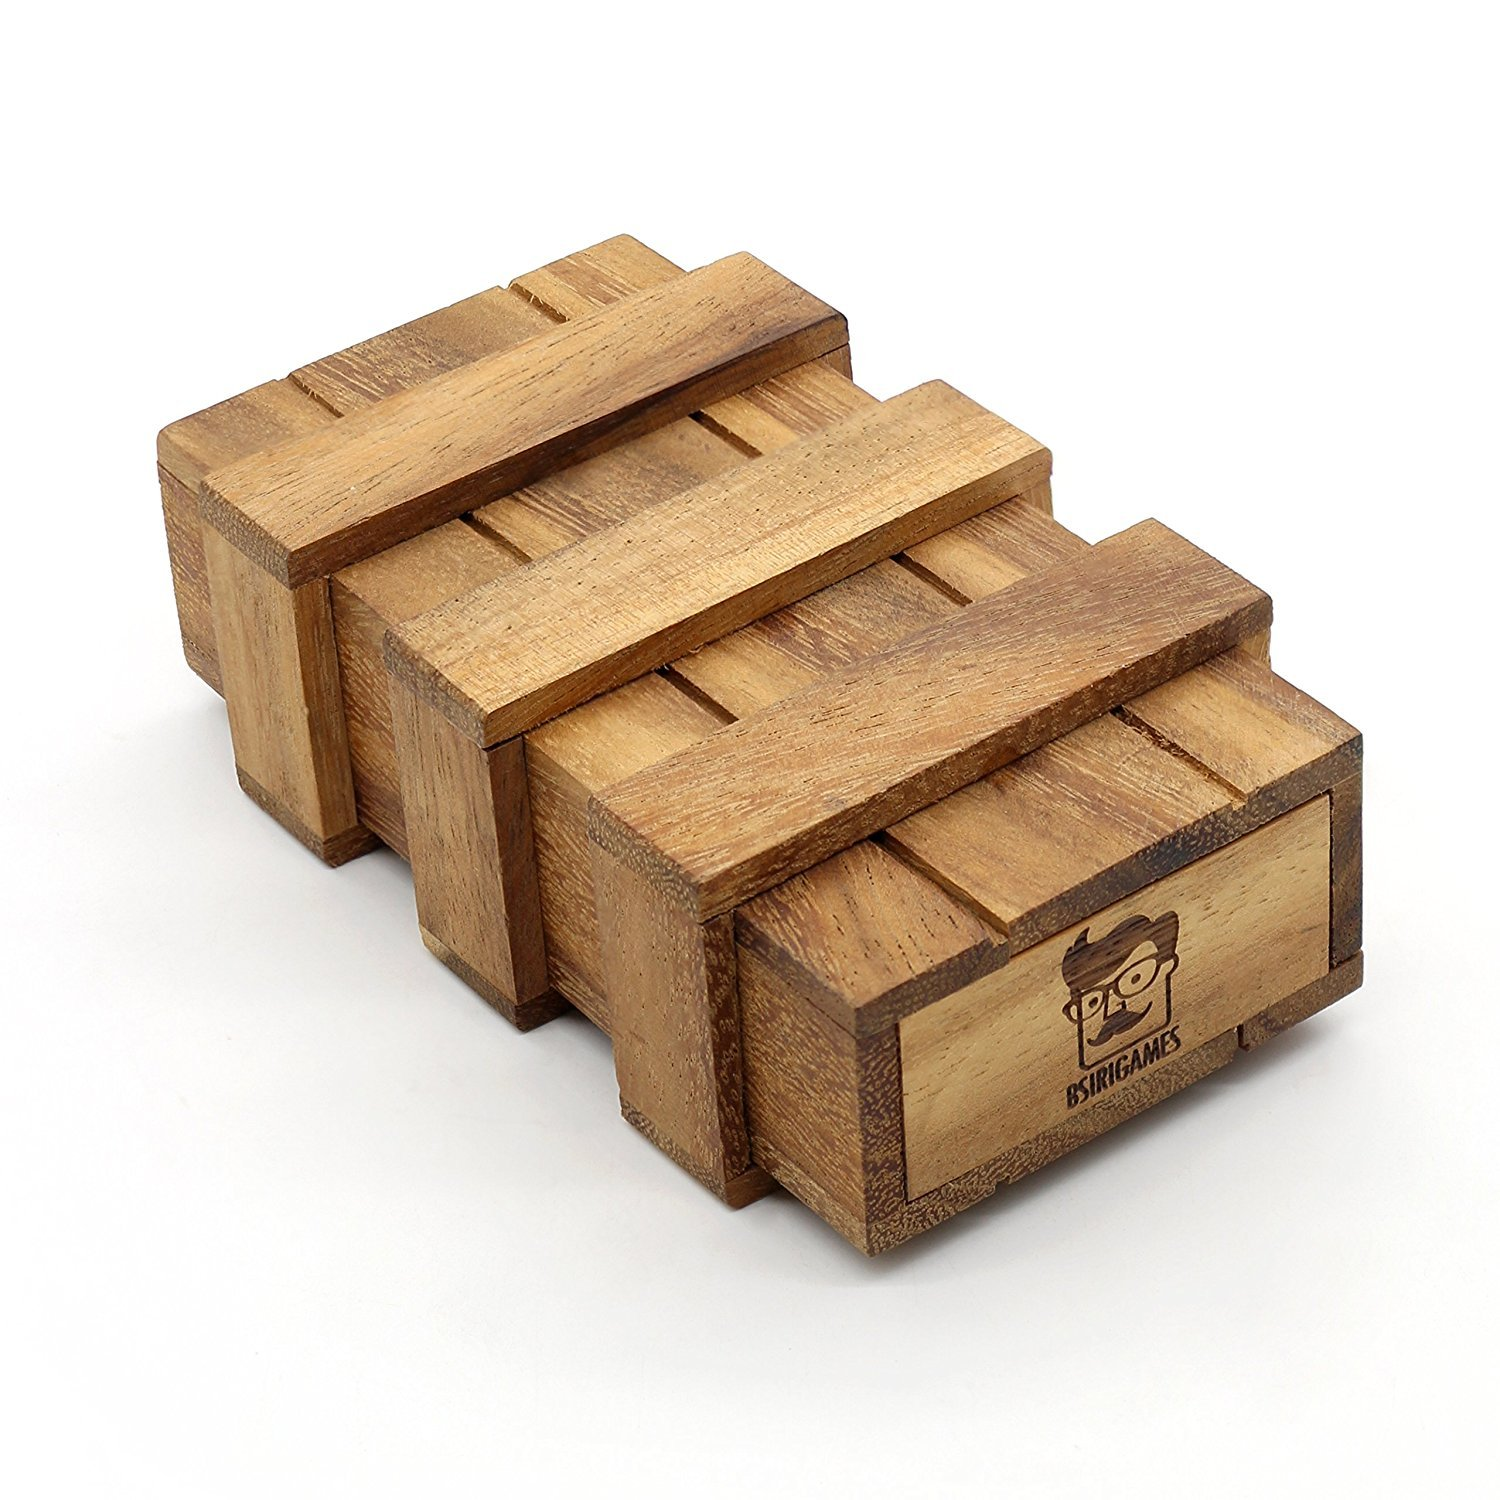 Bits and Pieces Great Puzzling Gift Brainteaser Wooden Bamboo Puzzle Box